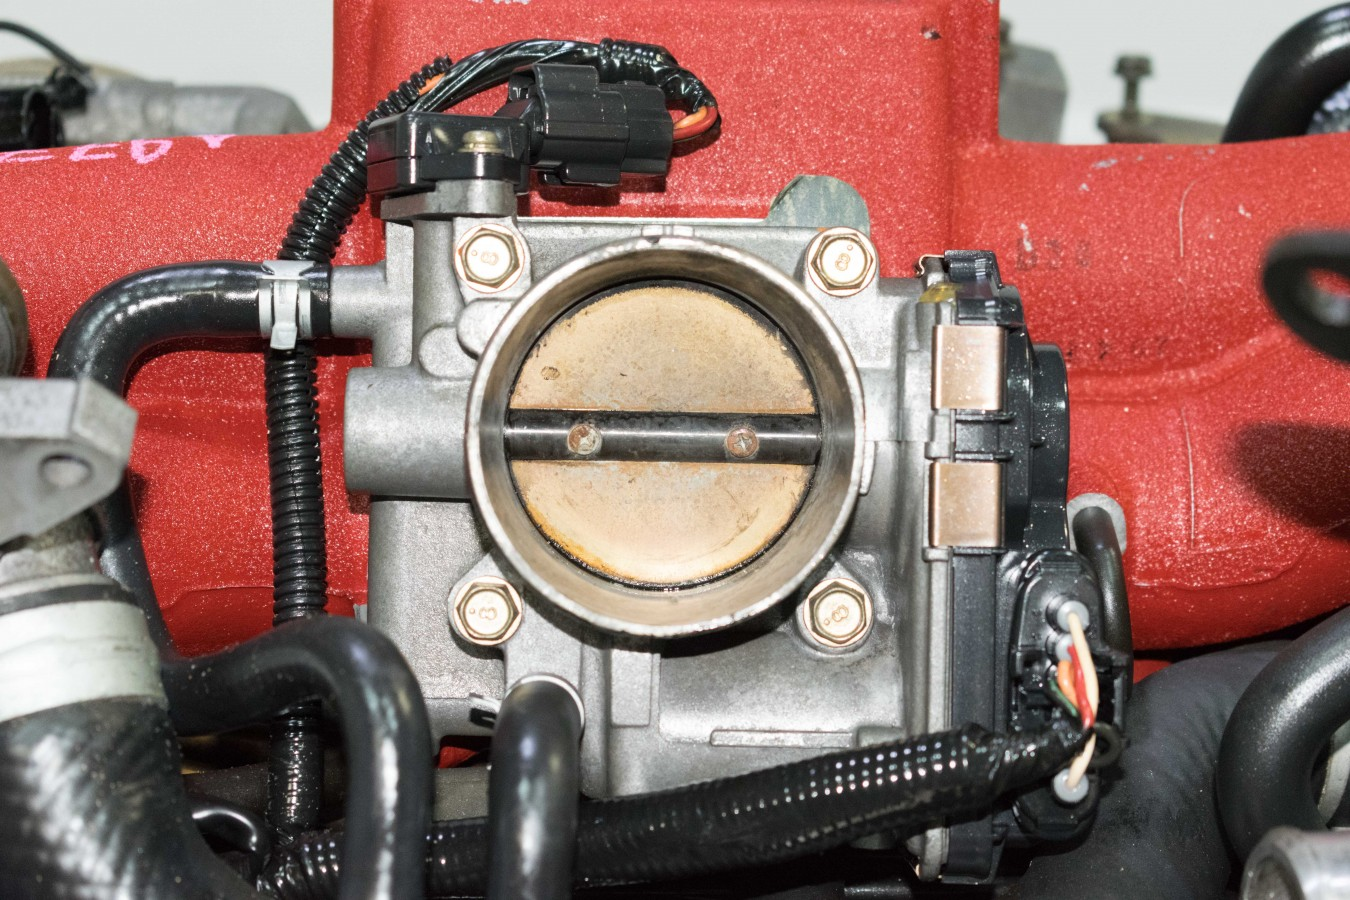 JDM Subaru EJ255 Long Block Engine Replacement for EJ257 2004-2007 STI &  2006-2007 WRX with TMIC for sale